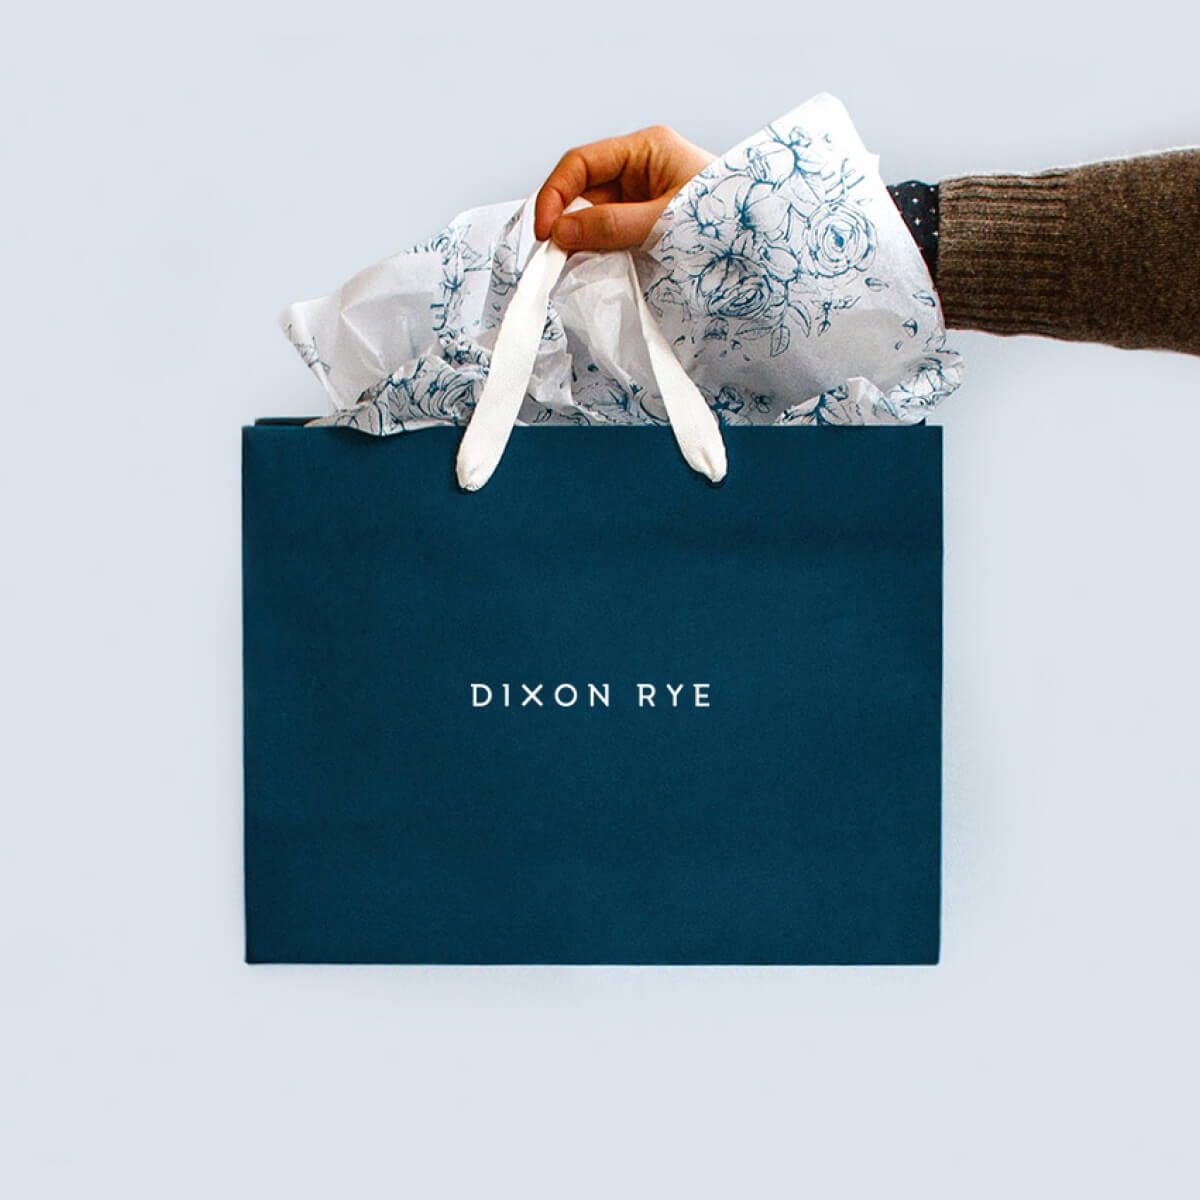 Dixon Rye - A sophisticated interior design studio and retail brand providing an intentional assortment of heritage-quality home goods – a place to buy better, fewer things.Branding, DesignView Project →